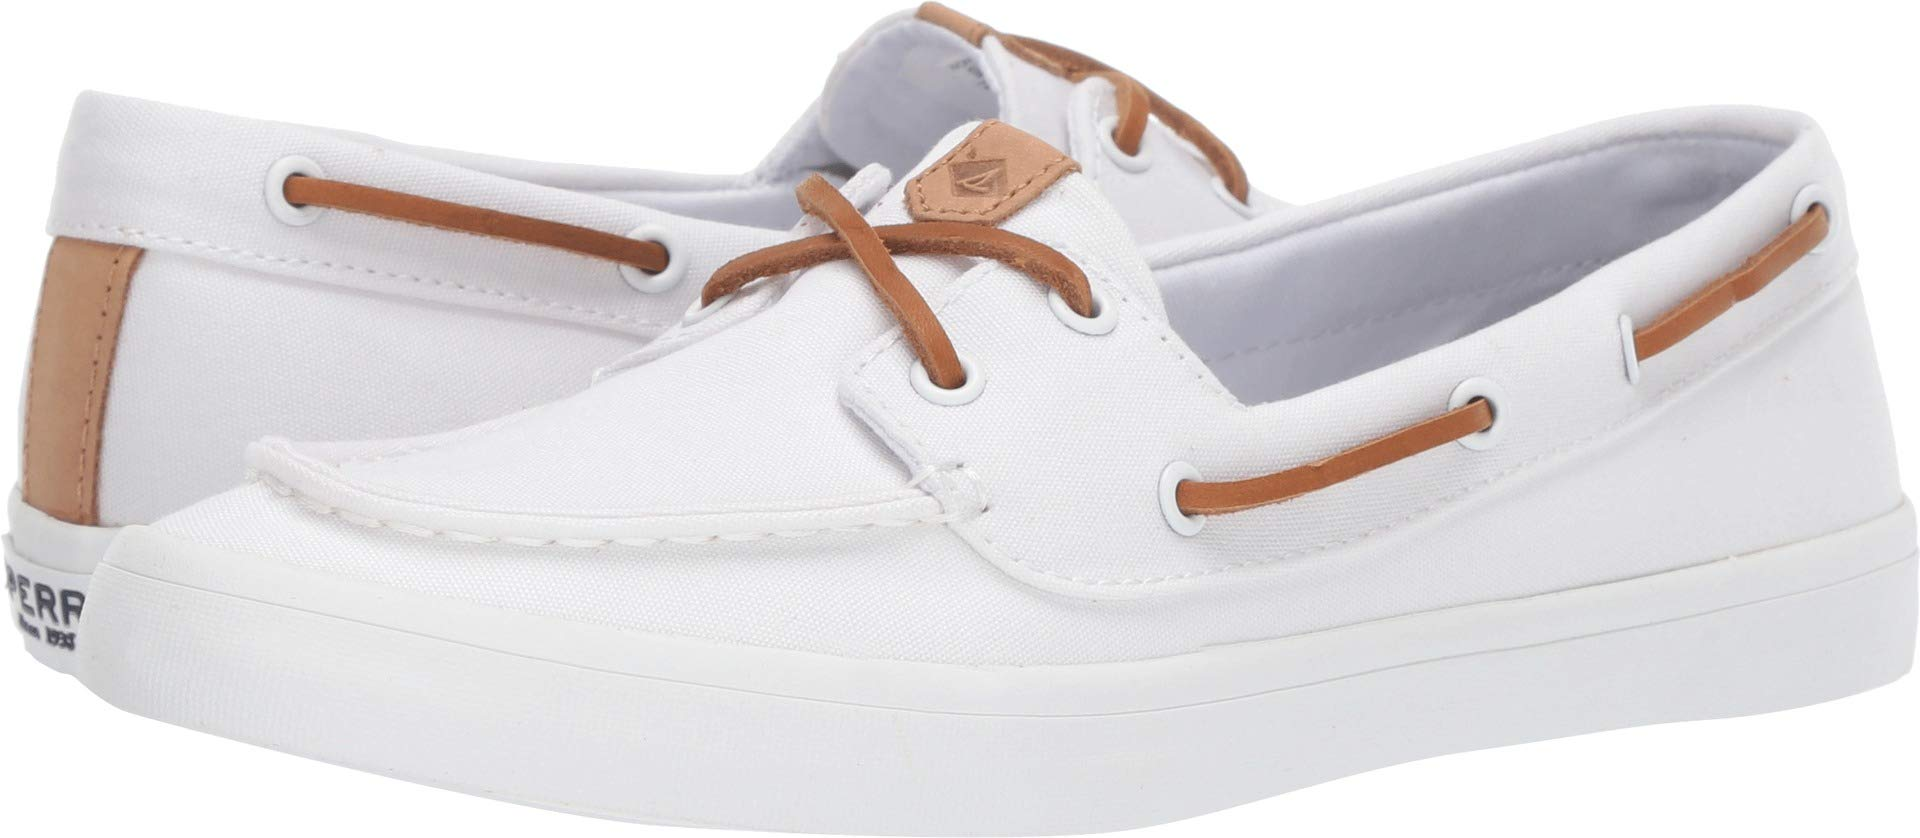 SPERRY Women's Sailor Boat Canvas White 7.5 M US by SPERRY